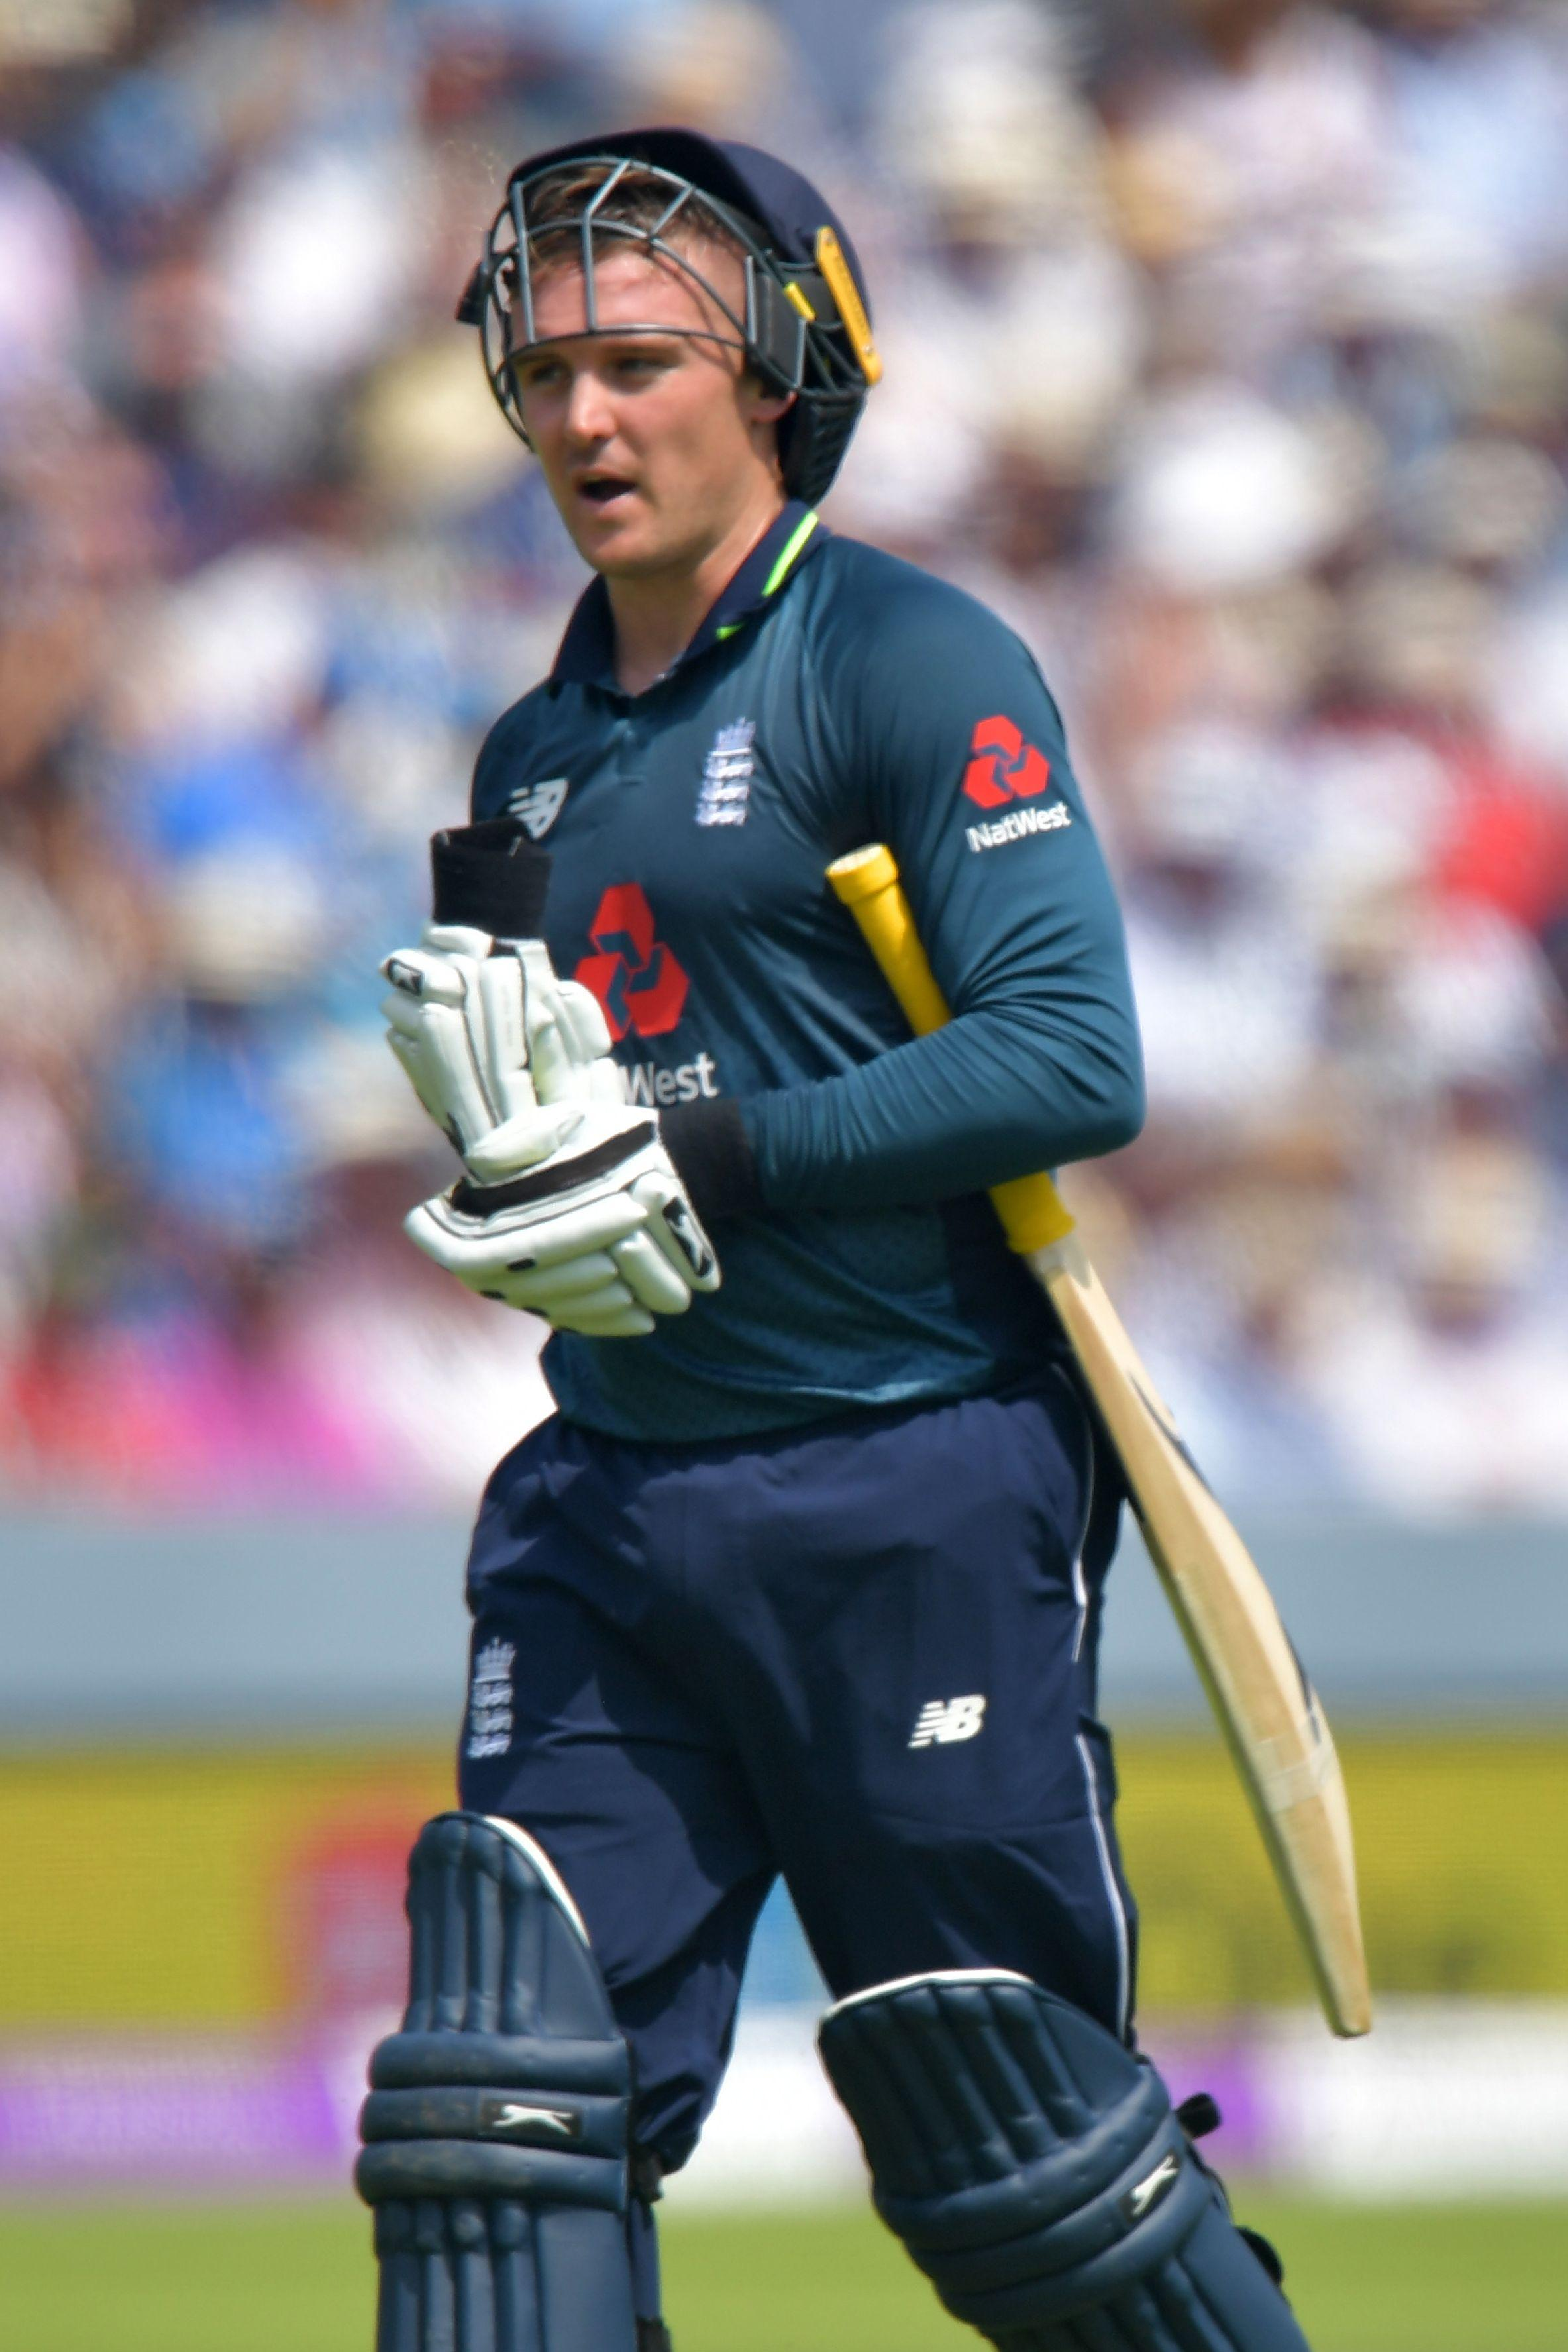 Jason Roy is rated 30-70 to play in the game at Headingley